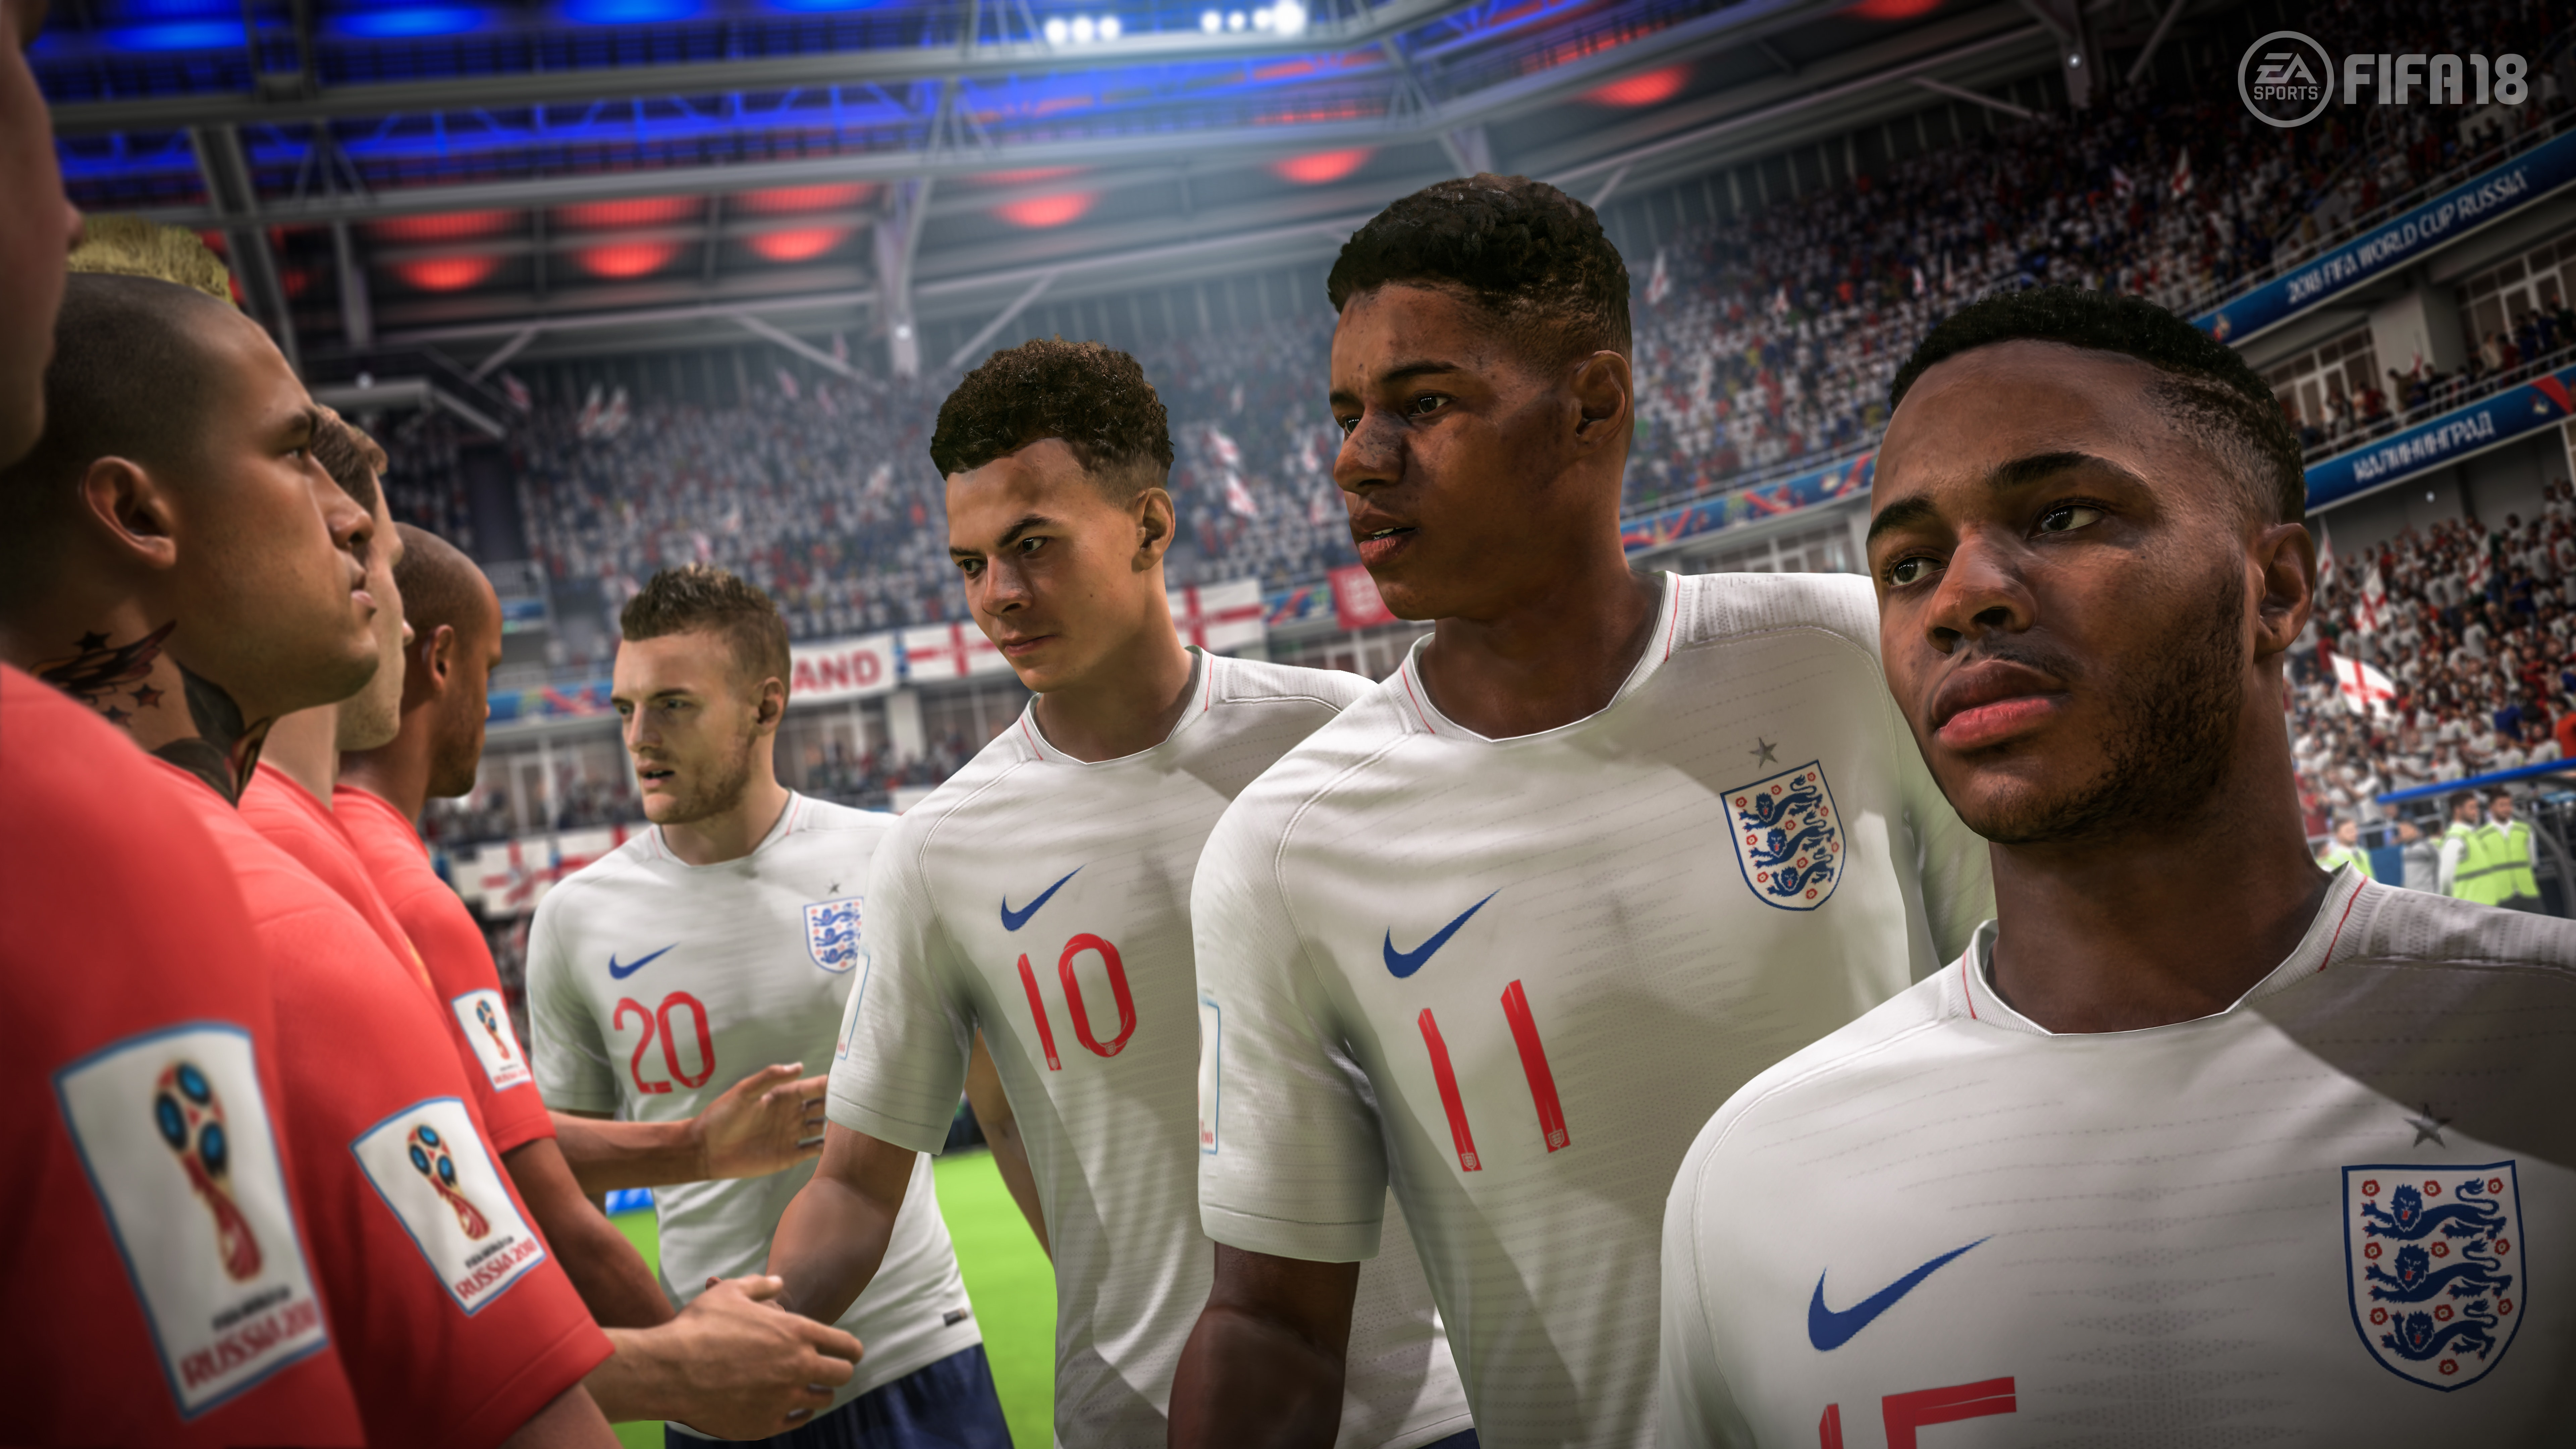 how to get fifa 18 for free ps4